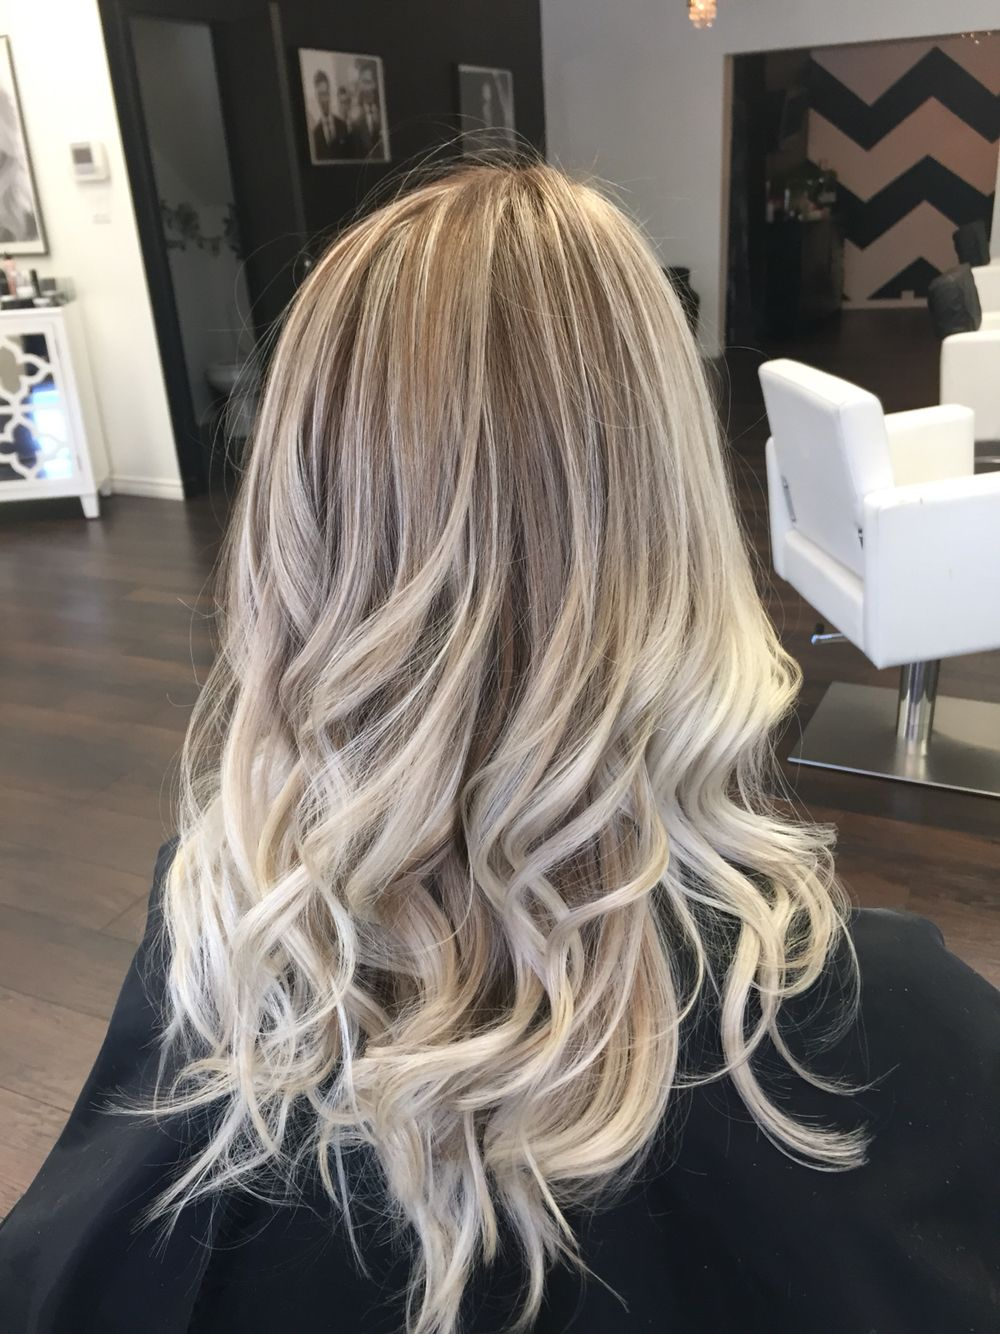 ash brown with blonde balayage beauty pinterest ash brown blonde balayage and balayage. Black Bedroom Furniture Sets. Home Design Ideas